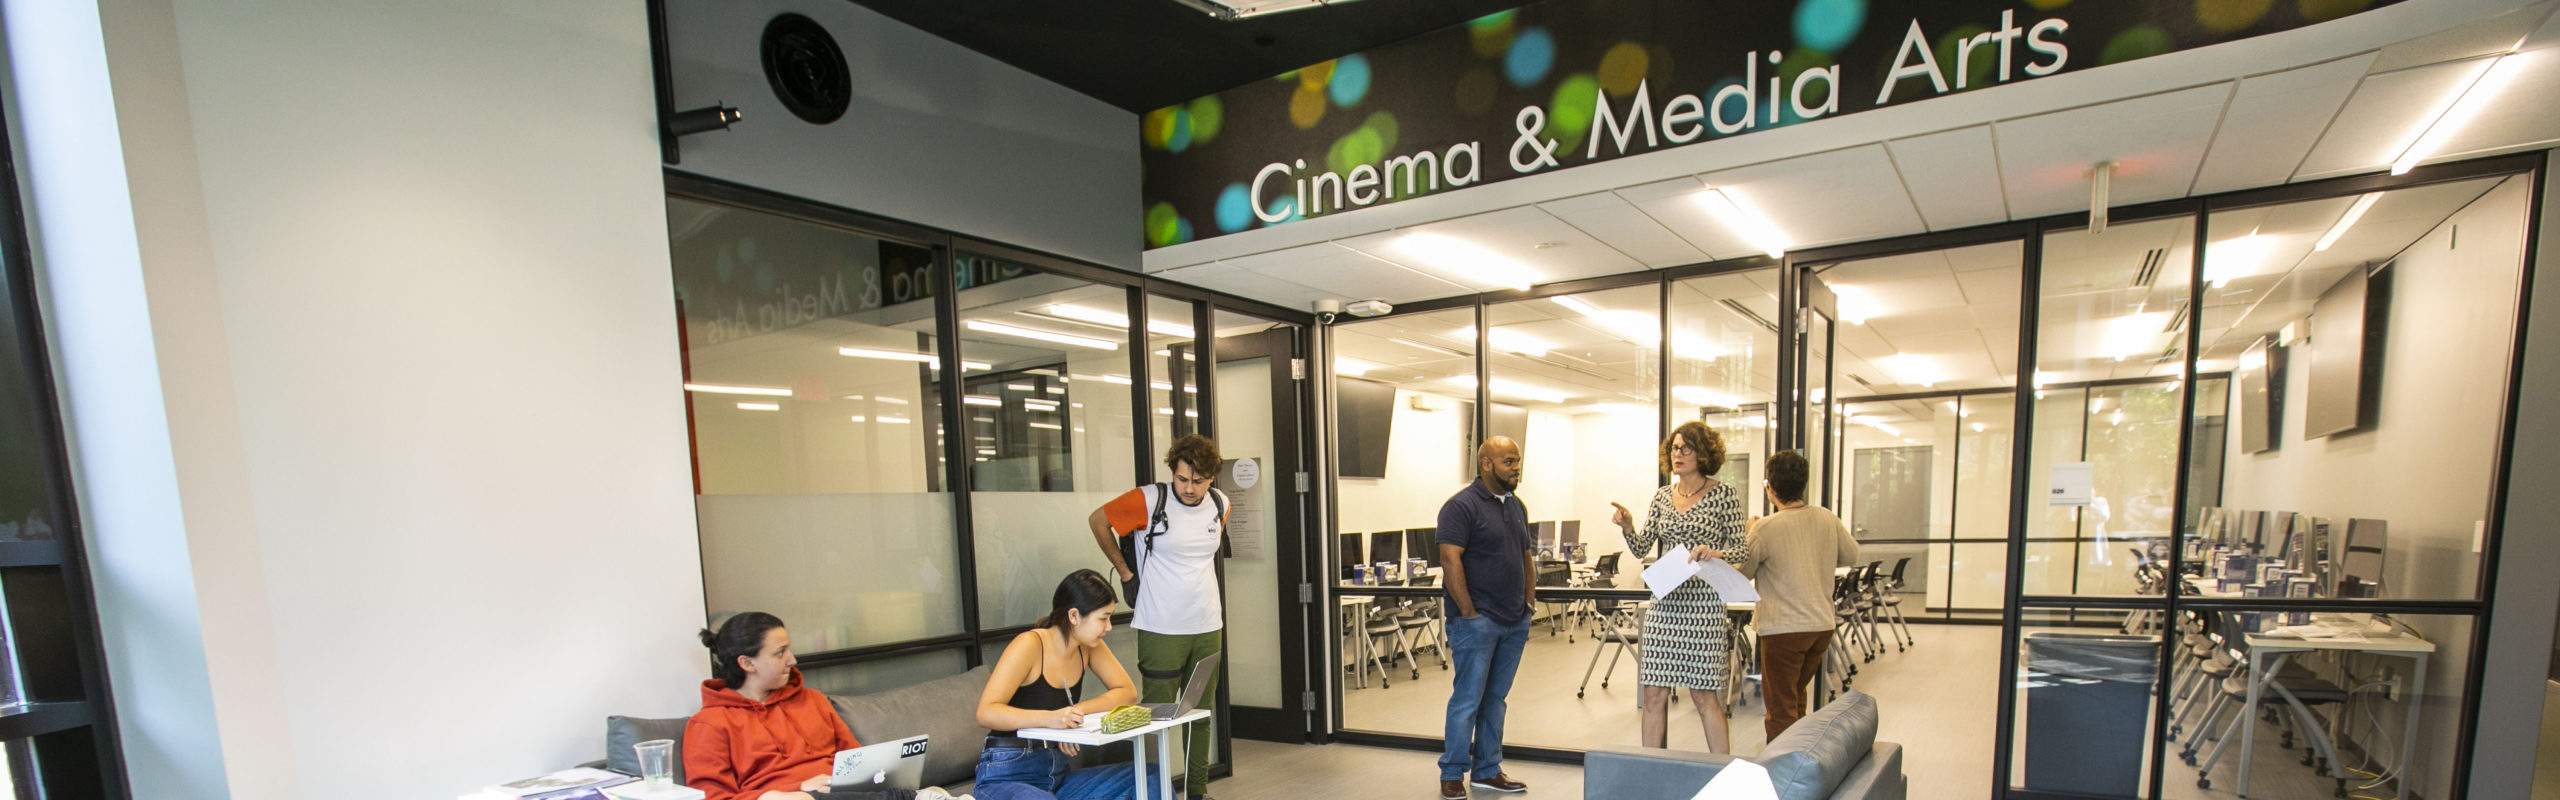 Lobby of Cinema and Media Arts department; students sitting in colorful chairs working on laptops; faculty standing and talking in front of glass wall